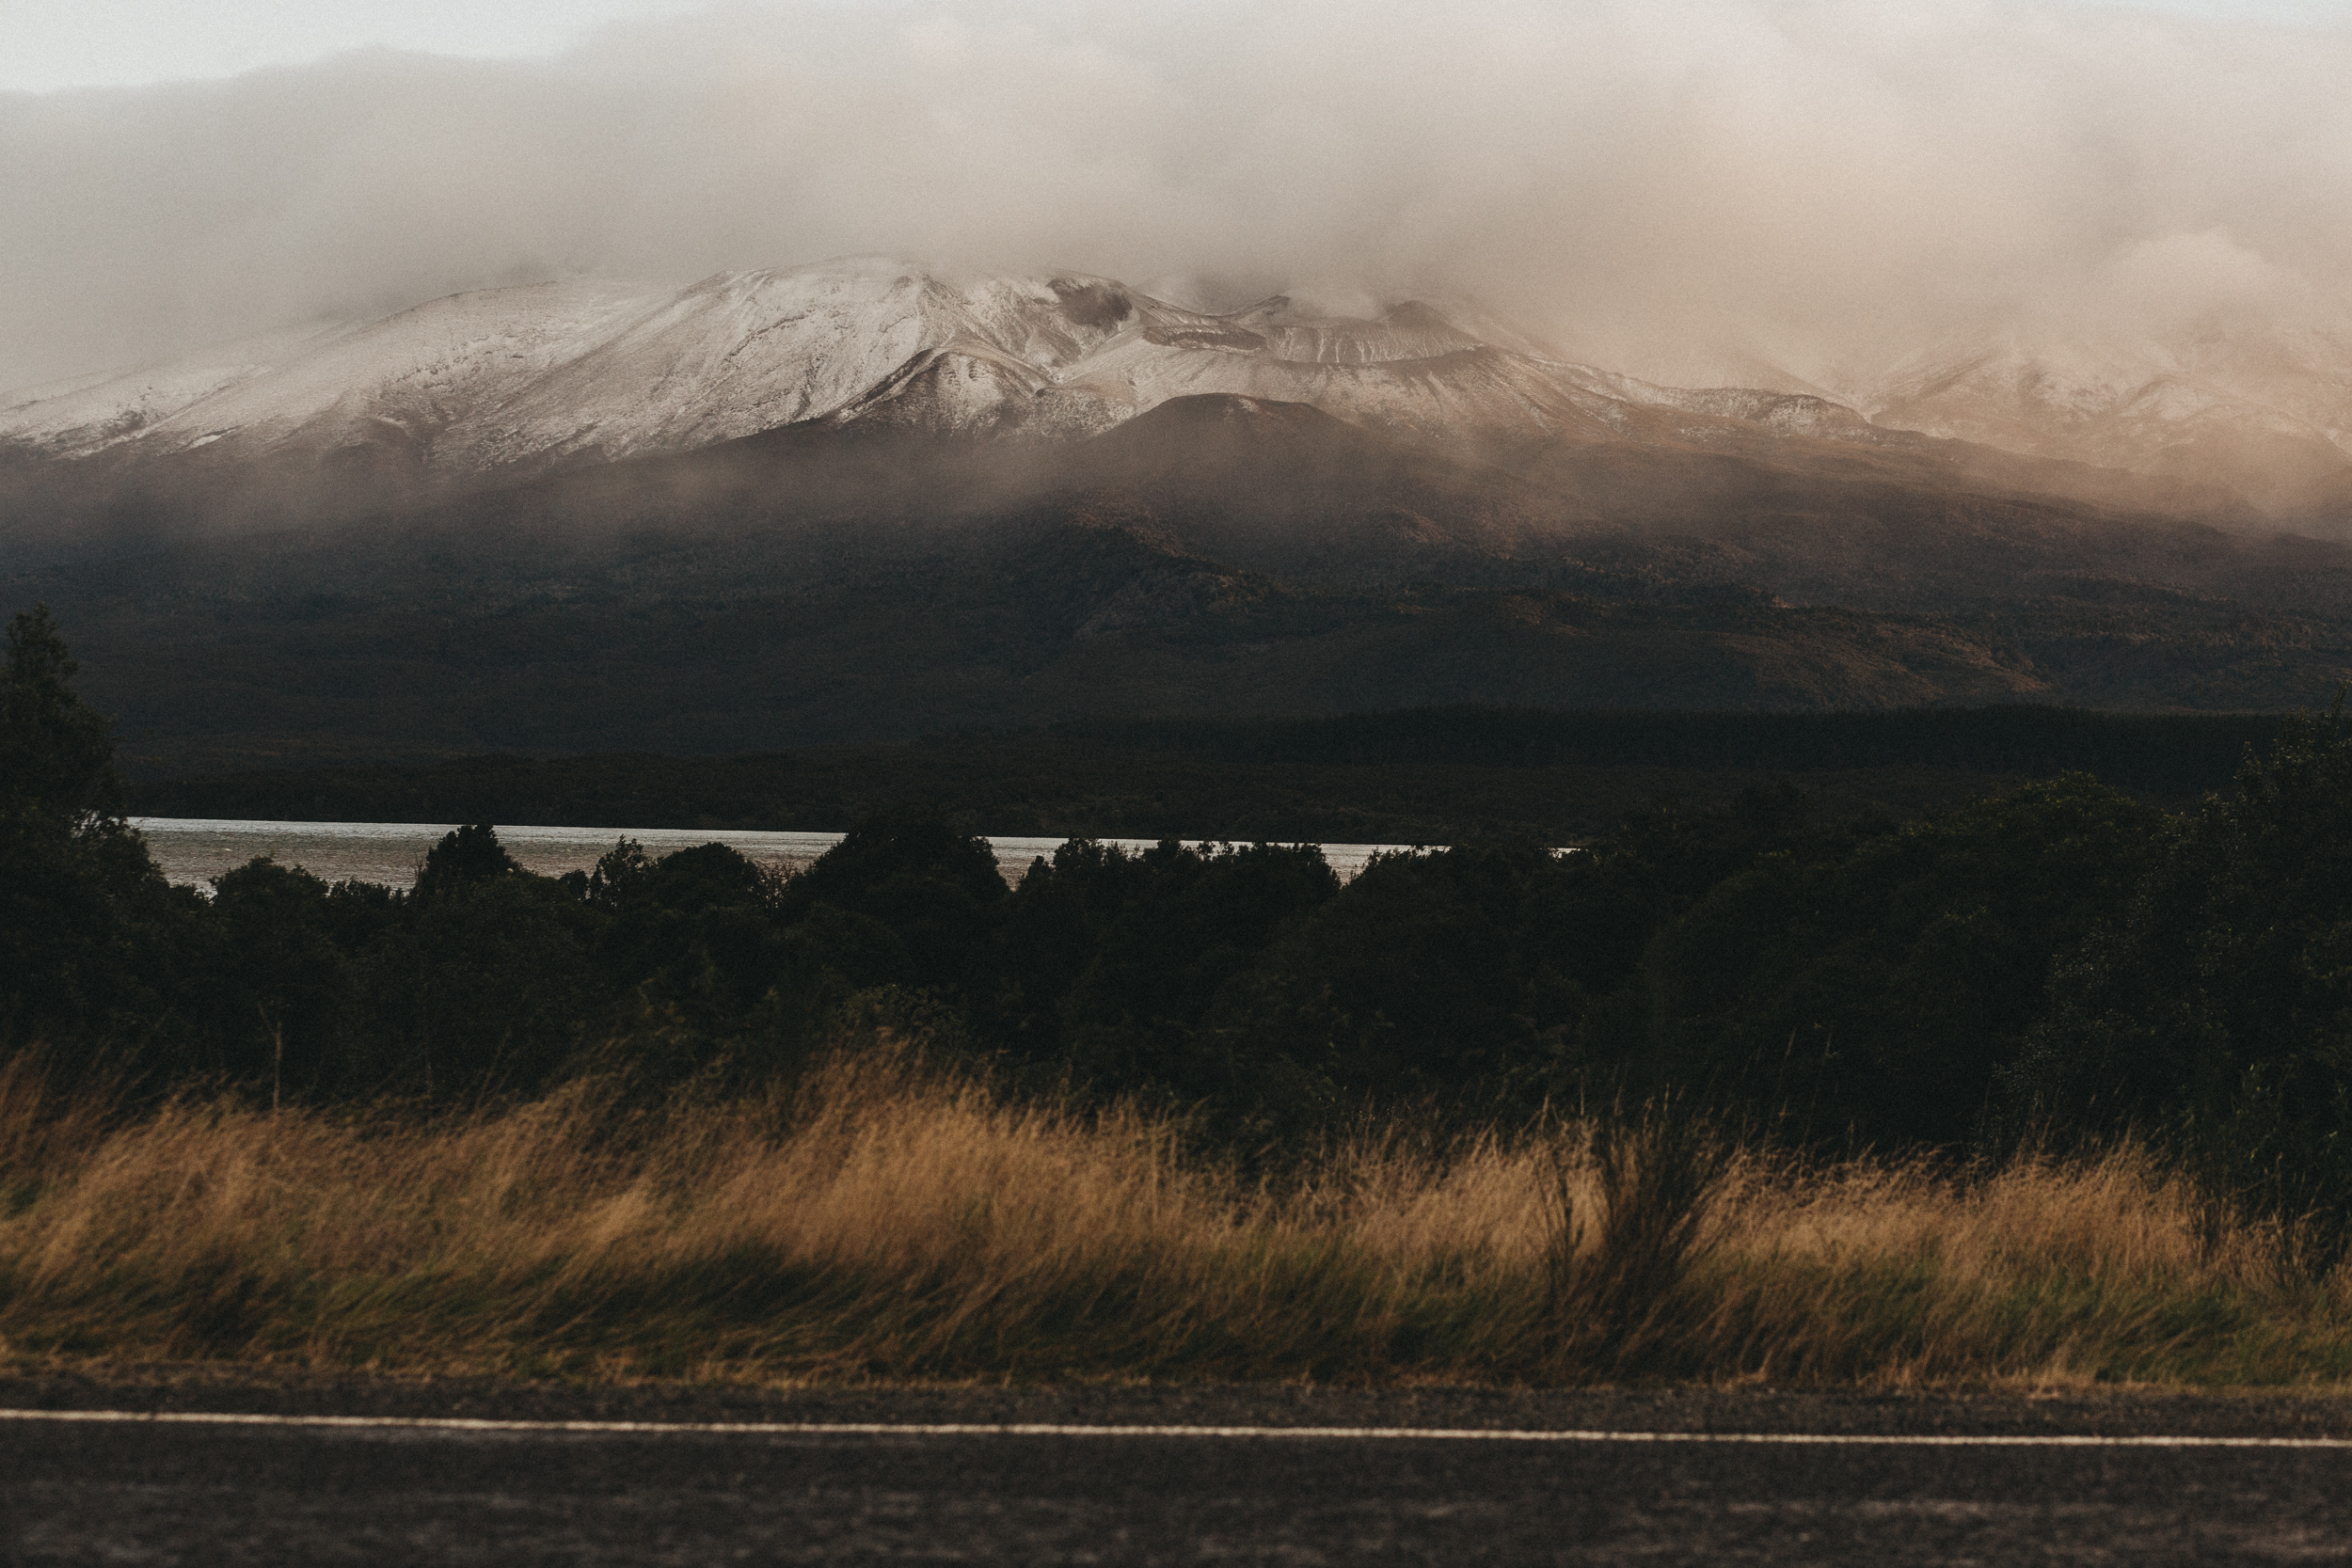 Day Two: views from the car as we drive past the volcanic mountains and Lake Rotoaira at sunset.